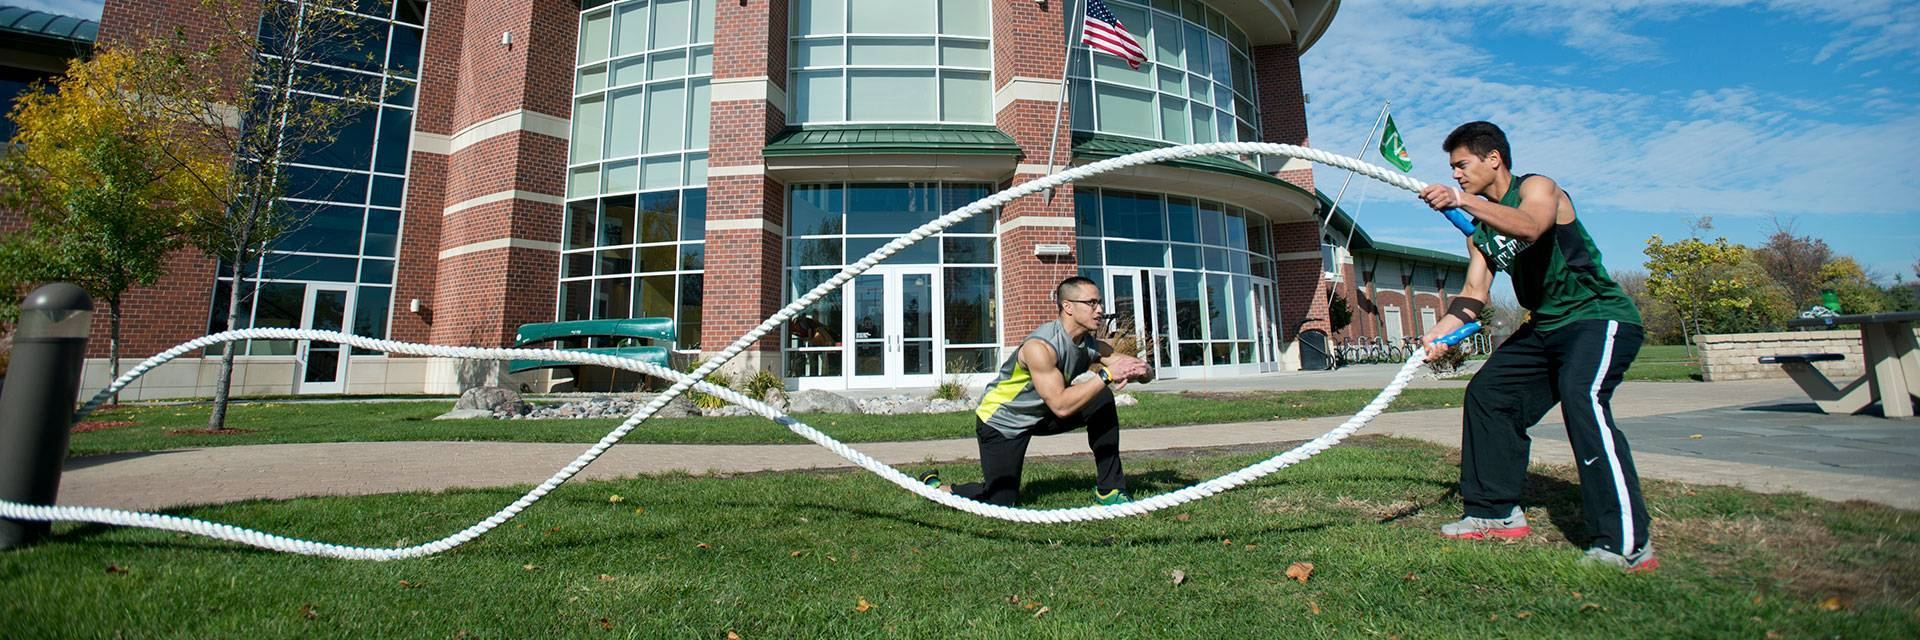 student exercising with ropes outside classroom building